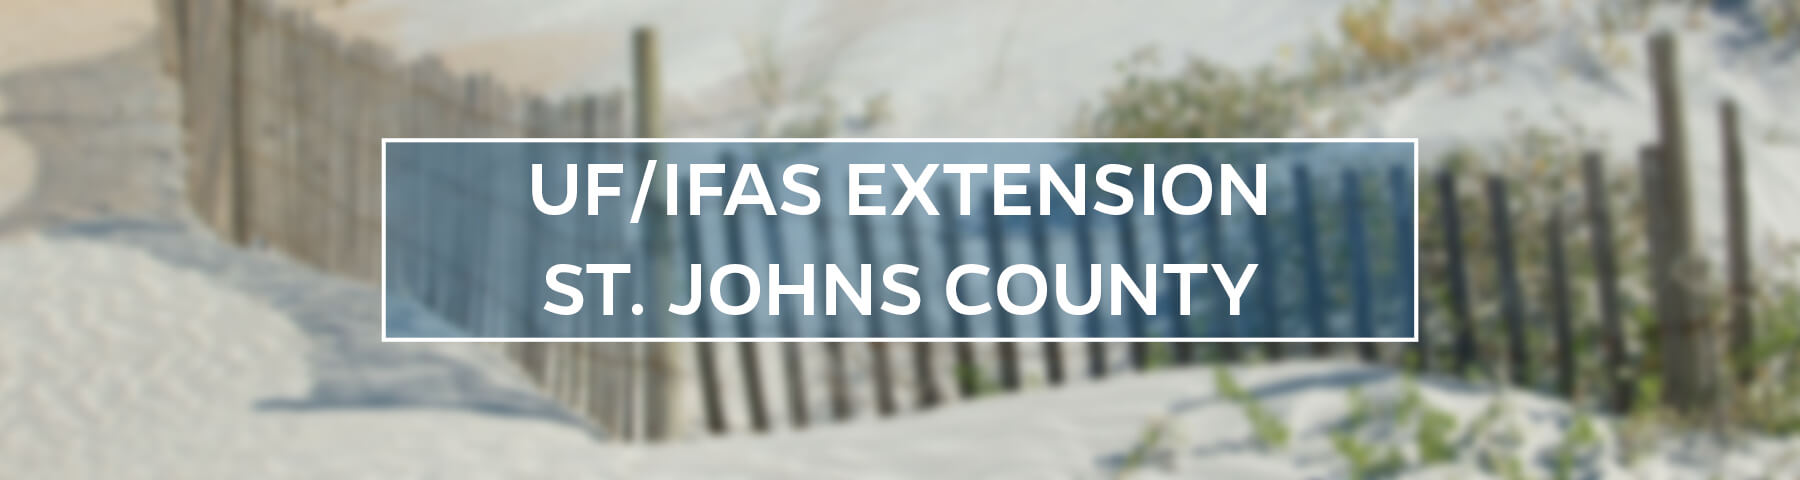 UF/IFAS Extension St. Johns County